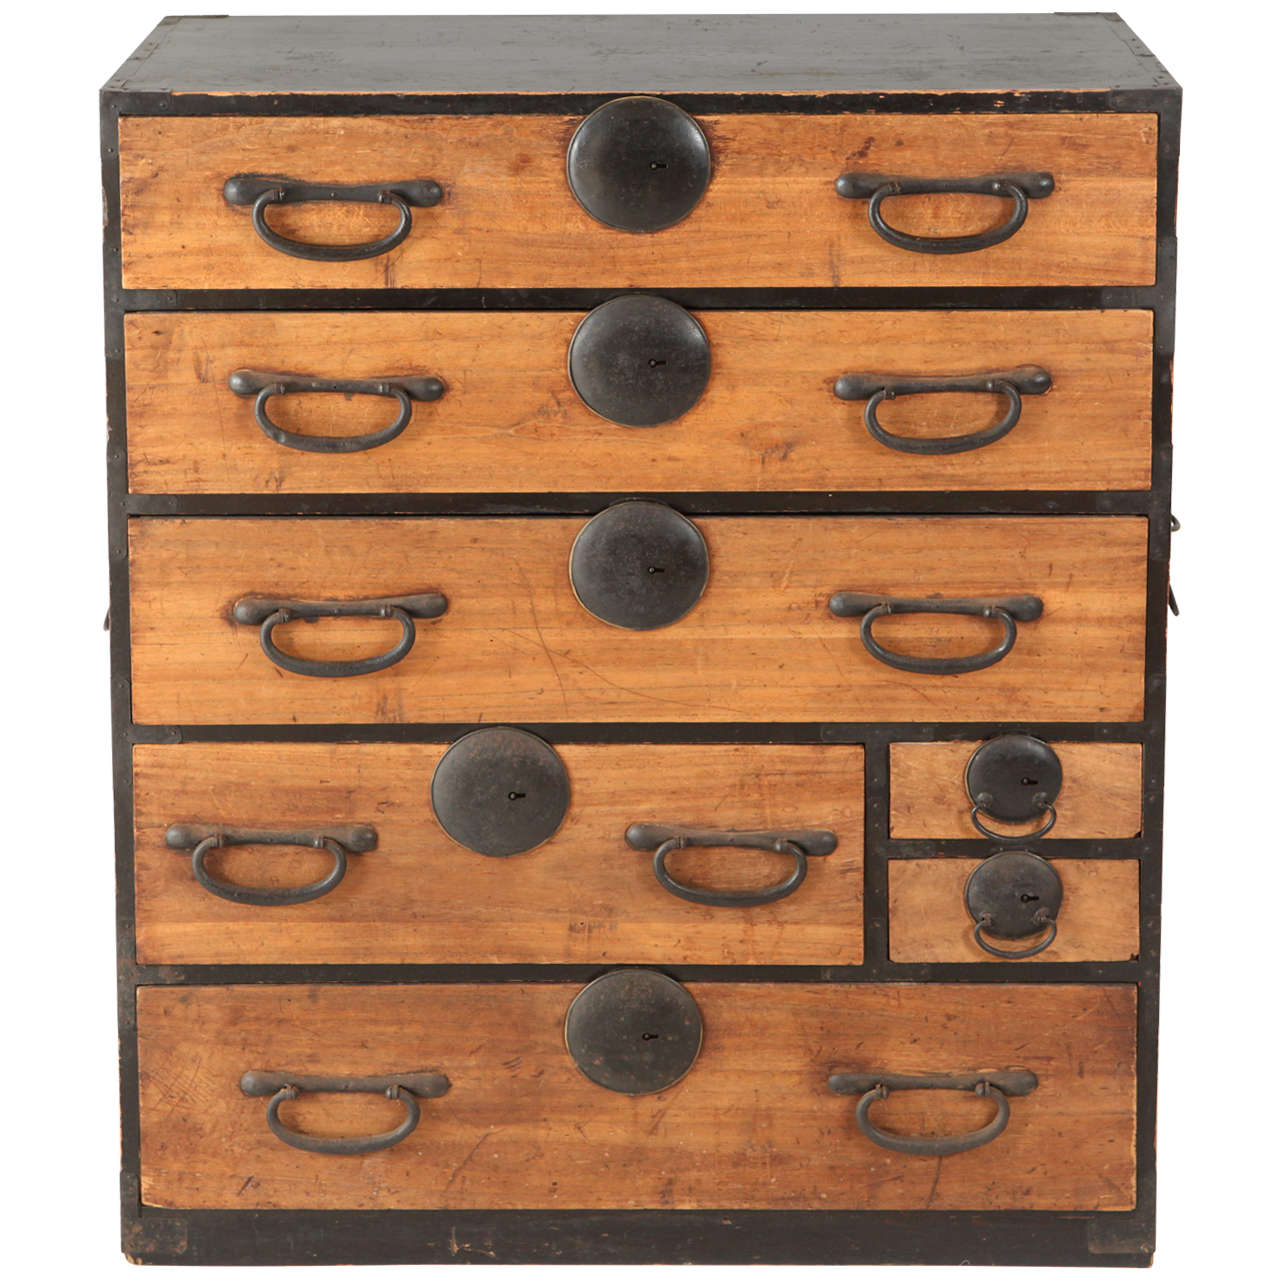 Japanese Chest Of Drawers / Tansu For Sale